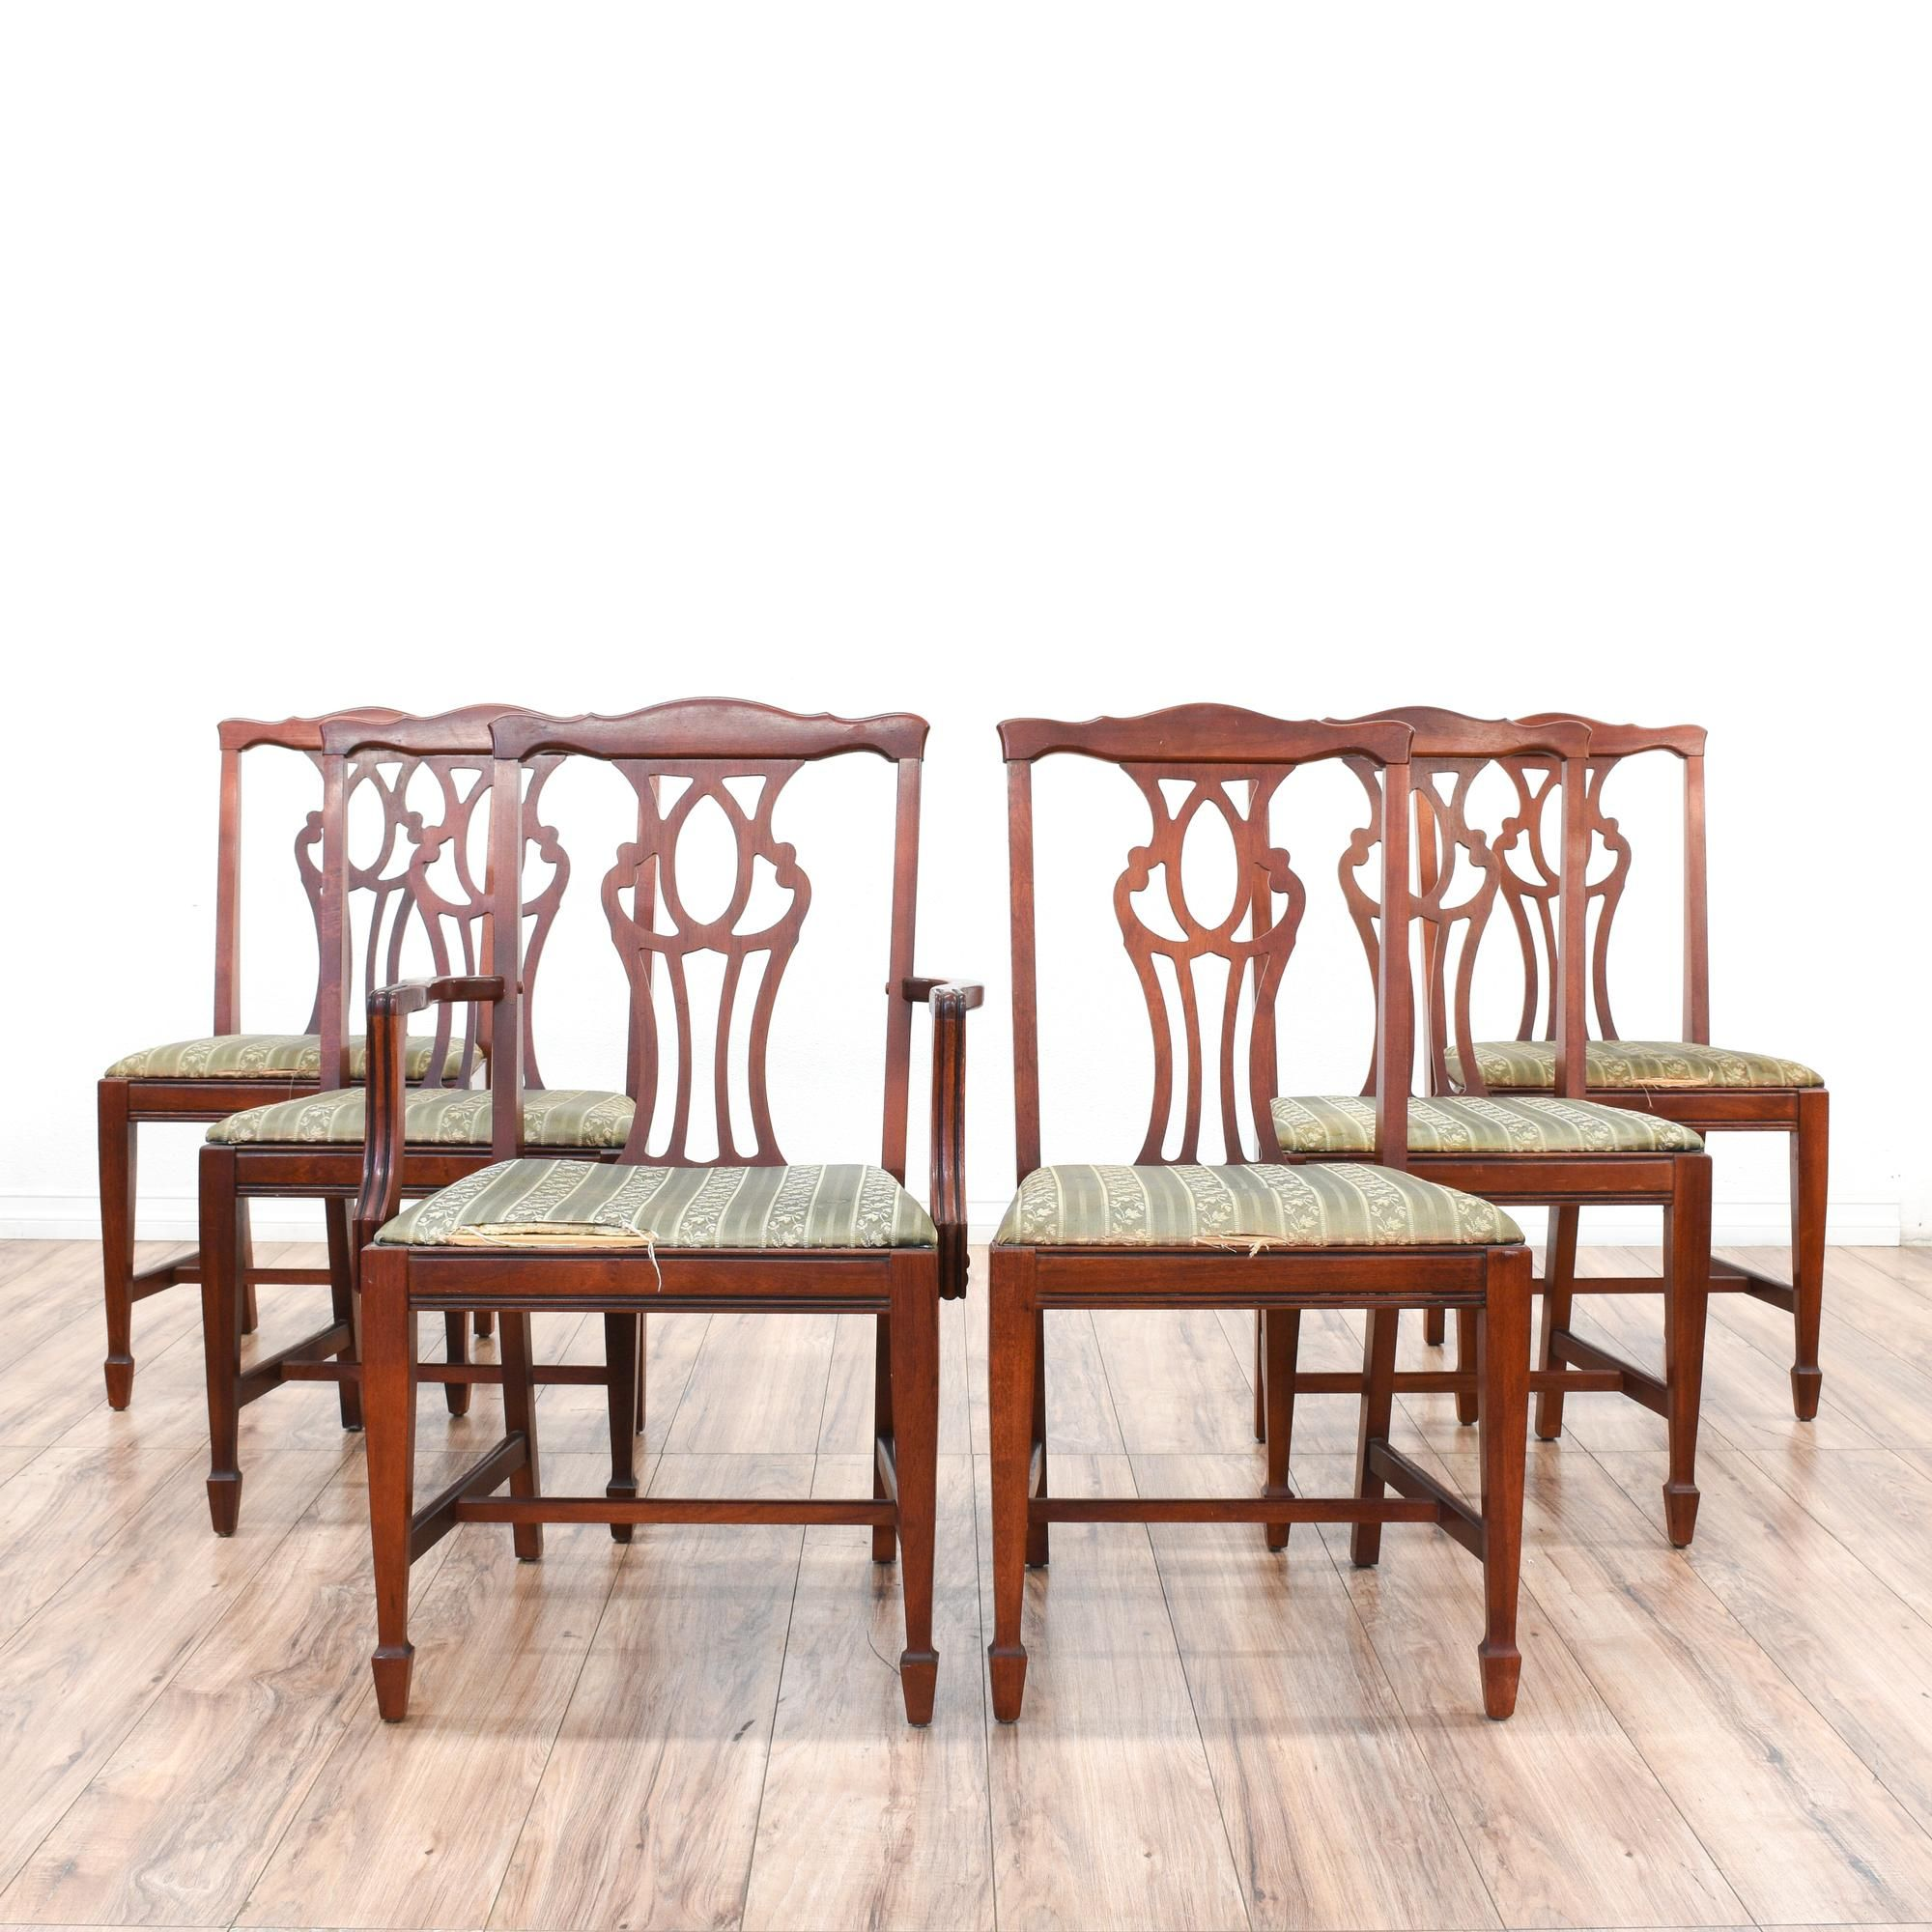 This set of 6 dining chairs is featured in a solid wood with a